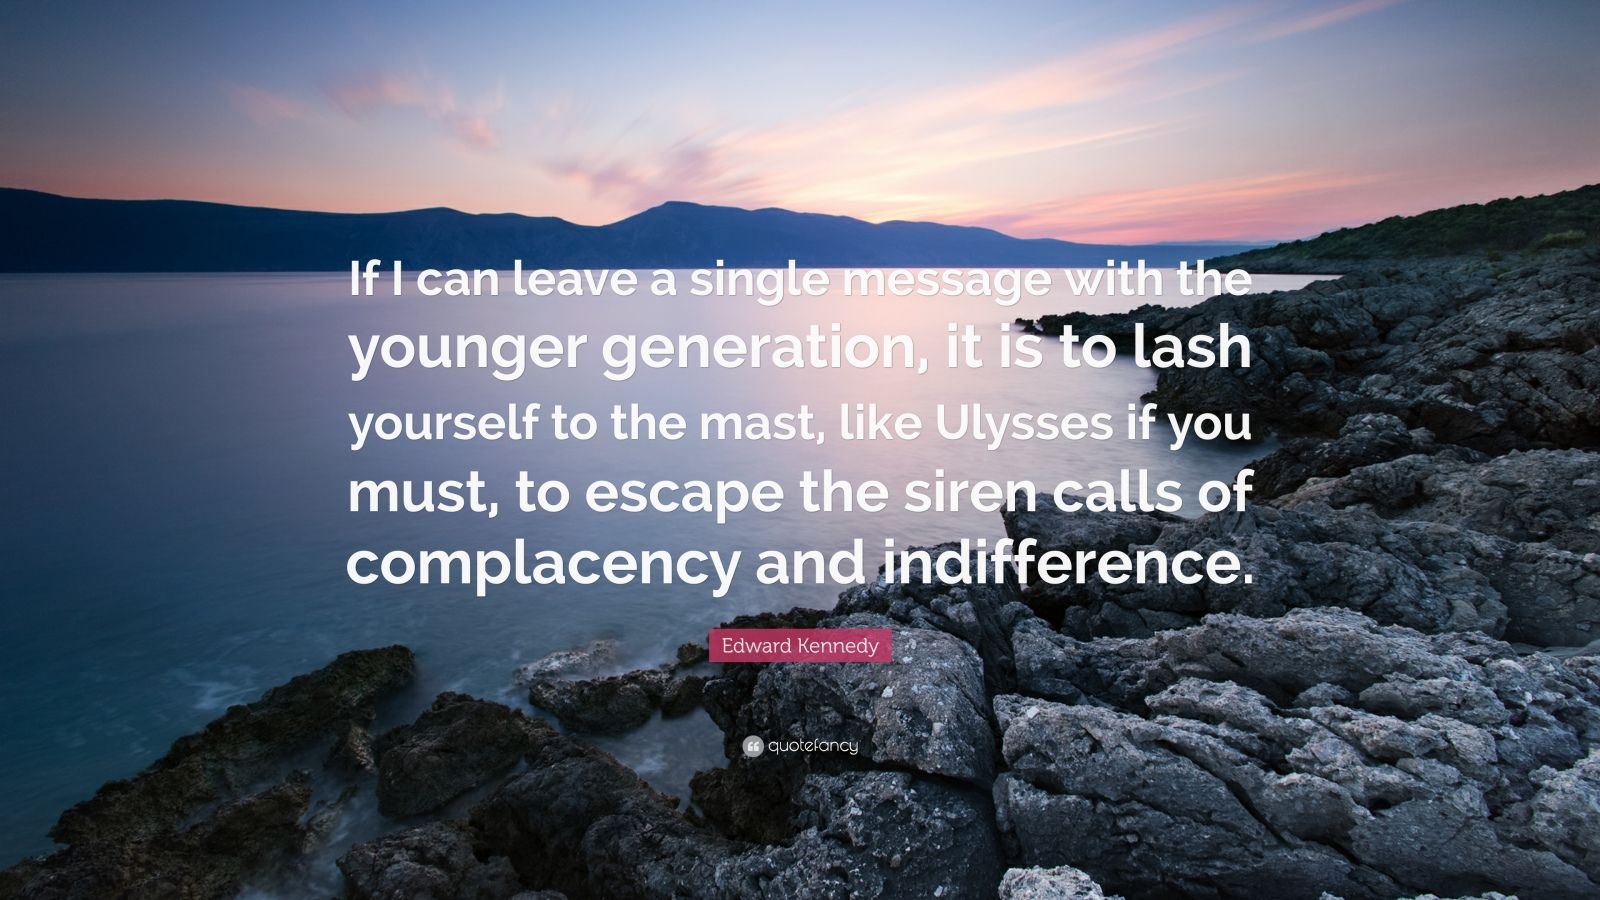 "Edward Kennedy Quote: ""If I can leave a single message with the younger generation, it is to lash yourself to the mast, like Ulysses if you must, to escape the siren calls of complacency and indifference."""